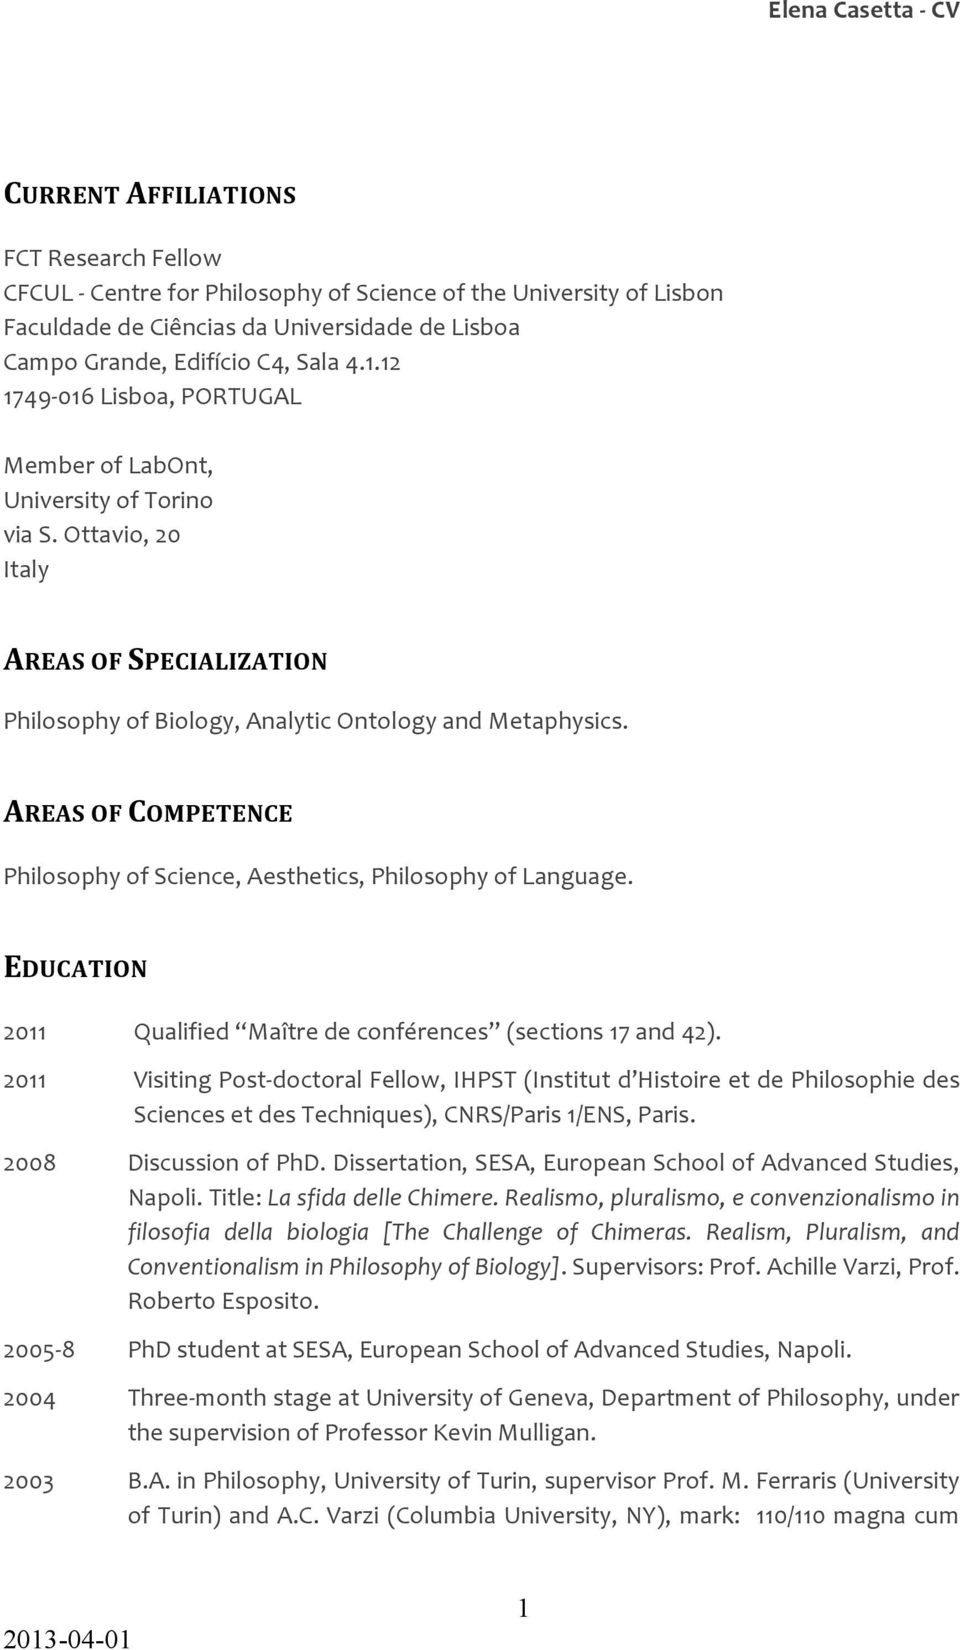 AREAS OF COMPETENCE Philosophy of Science, Aesthetics, Philosophy of Language. EDUCATION 2011 Qualified Maître de conférences (sections 17 and 42).